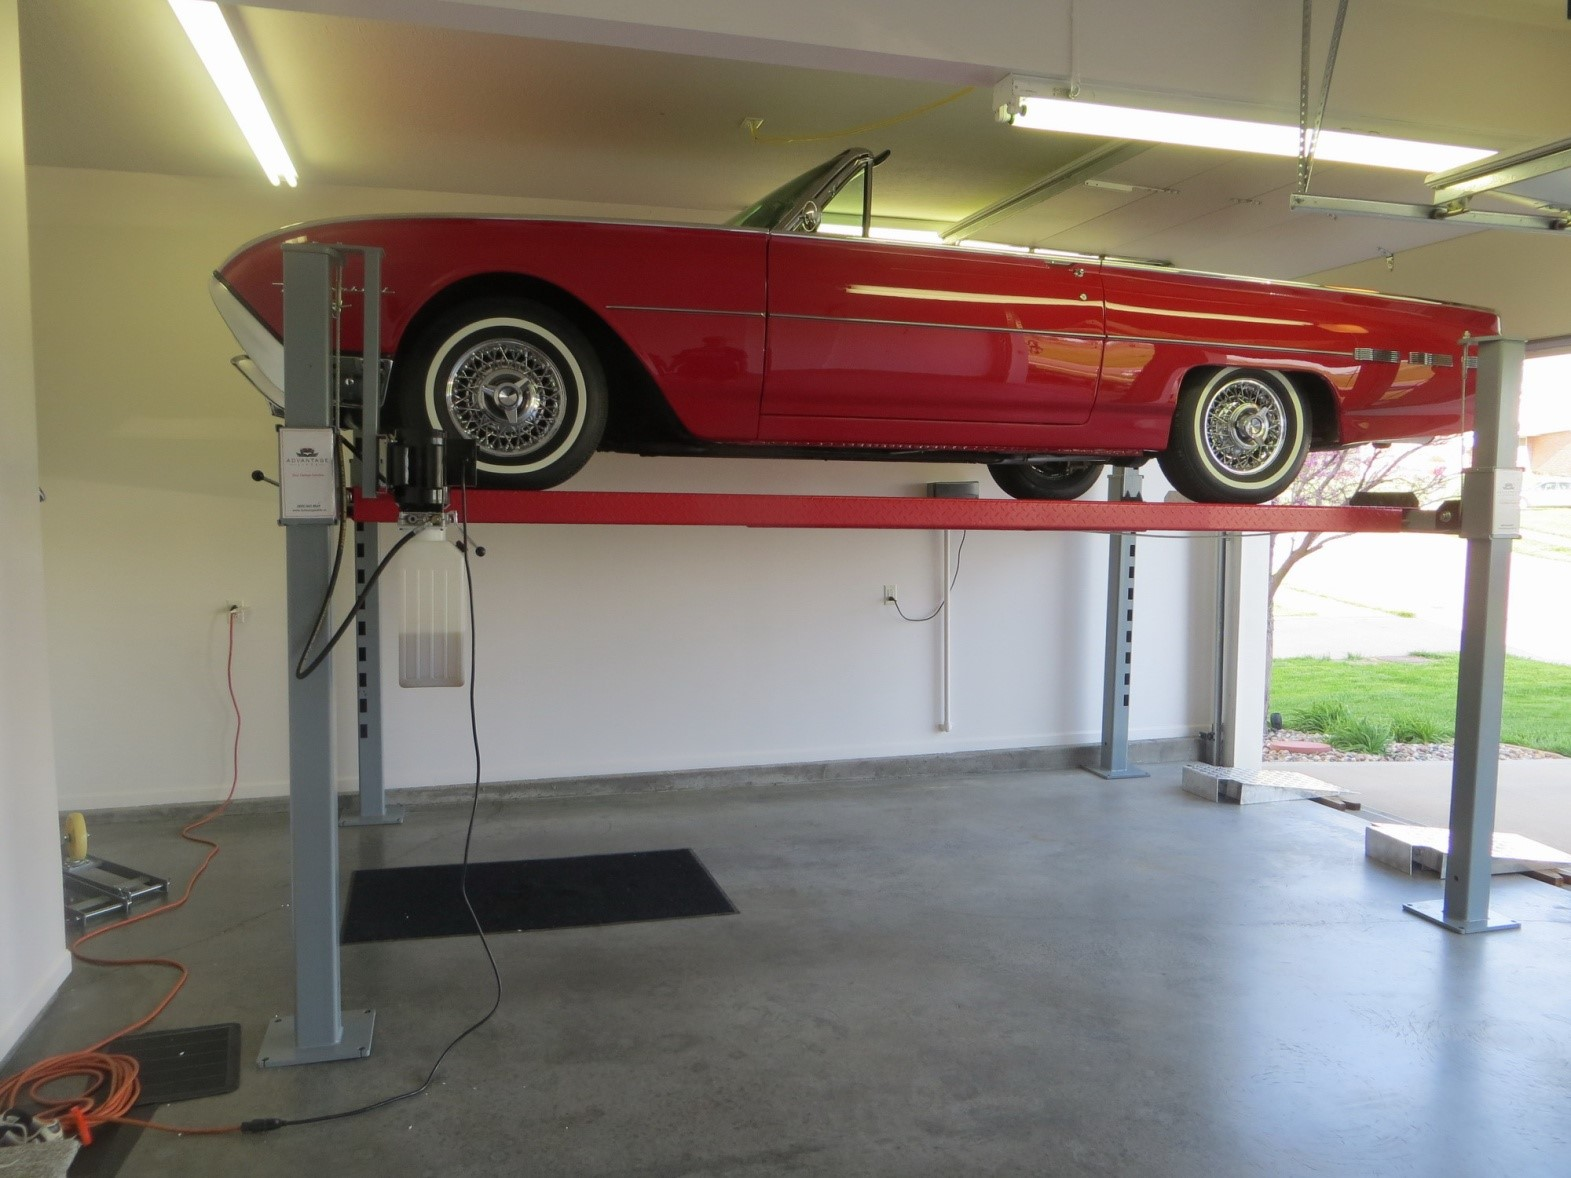 Lift King 9XL Portable 4.0T Parking Hoist Extra Long/Extra Wide Image 02